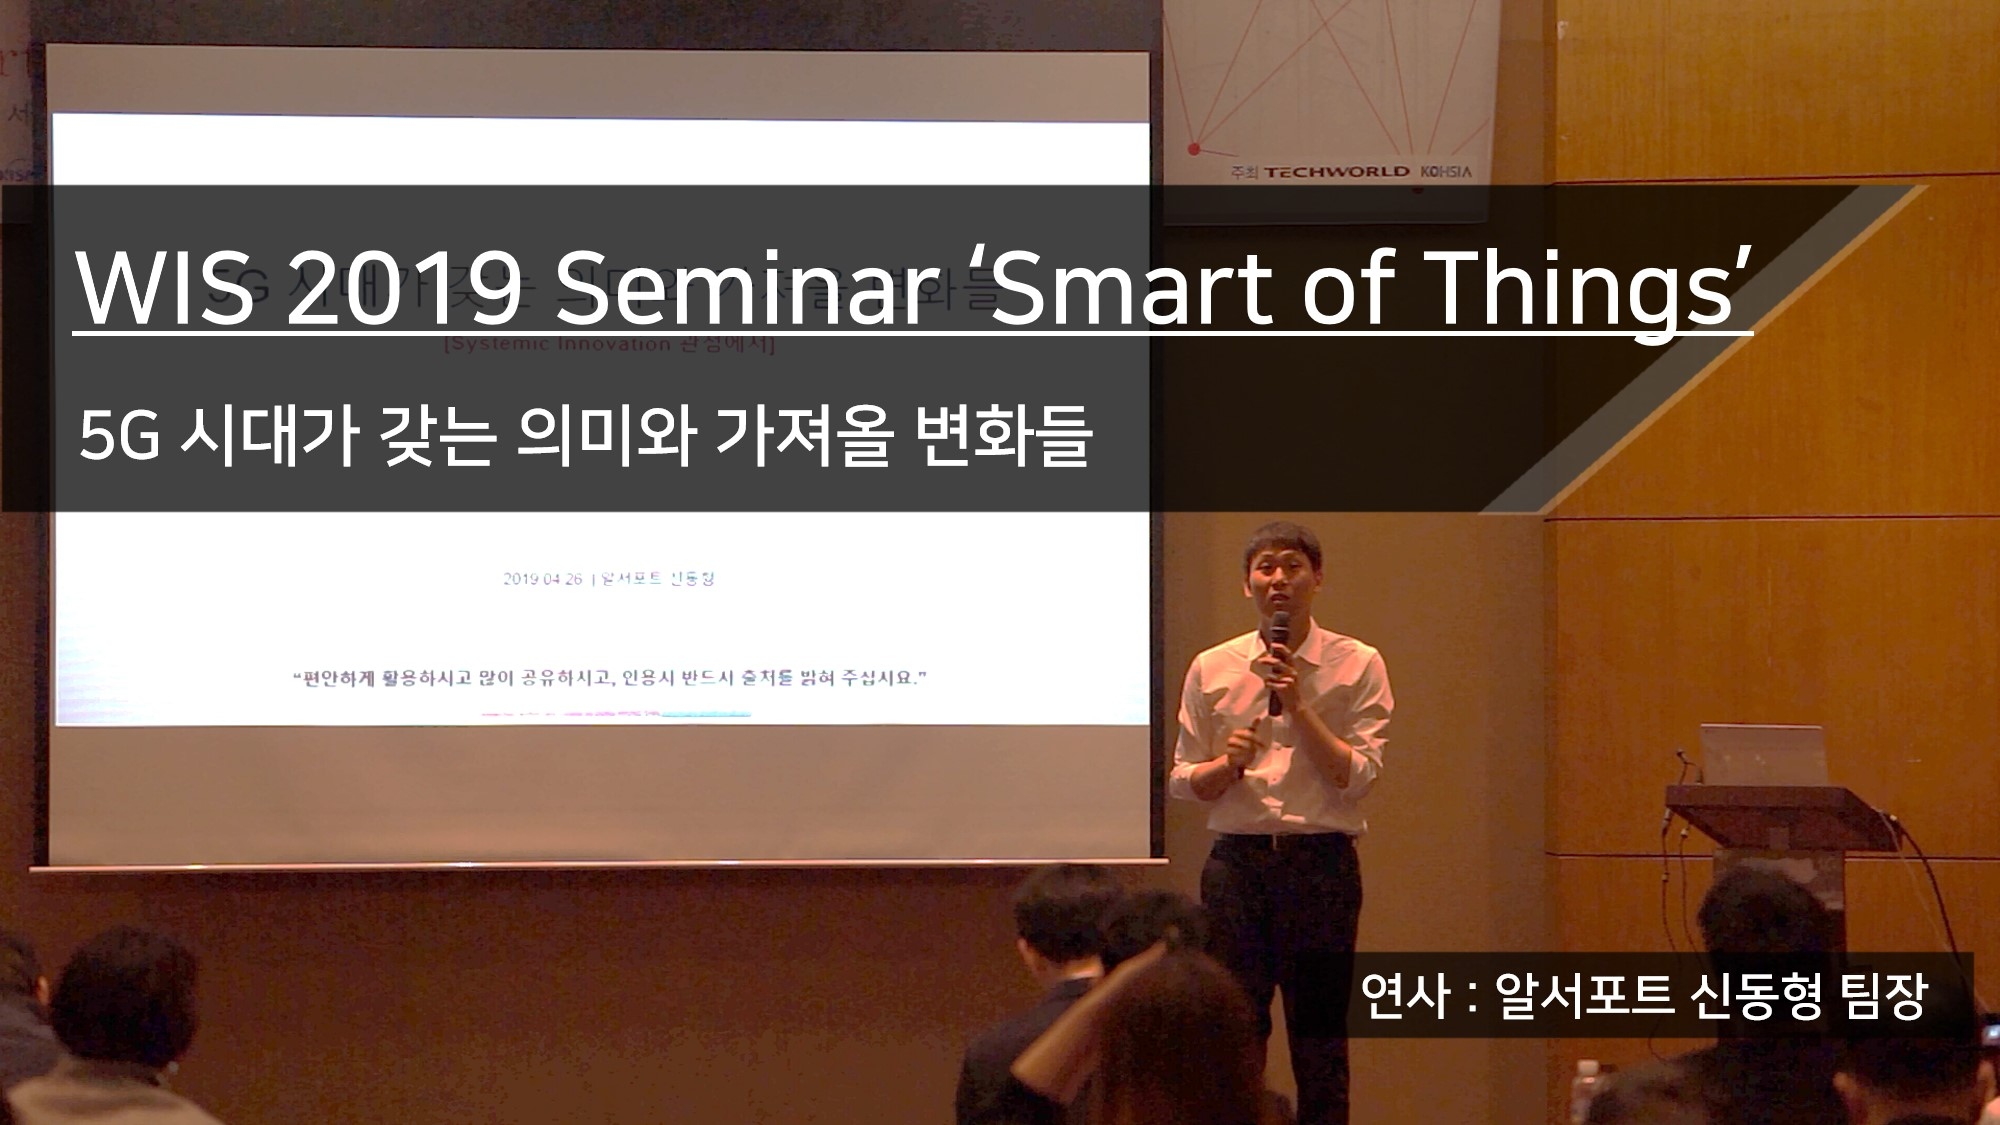 WIS 2019 Seminar 'Smart of Things'